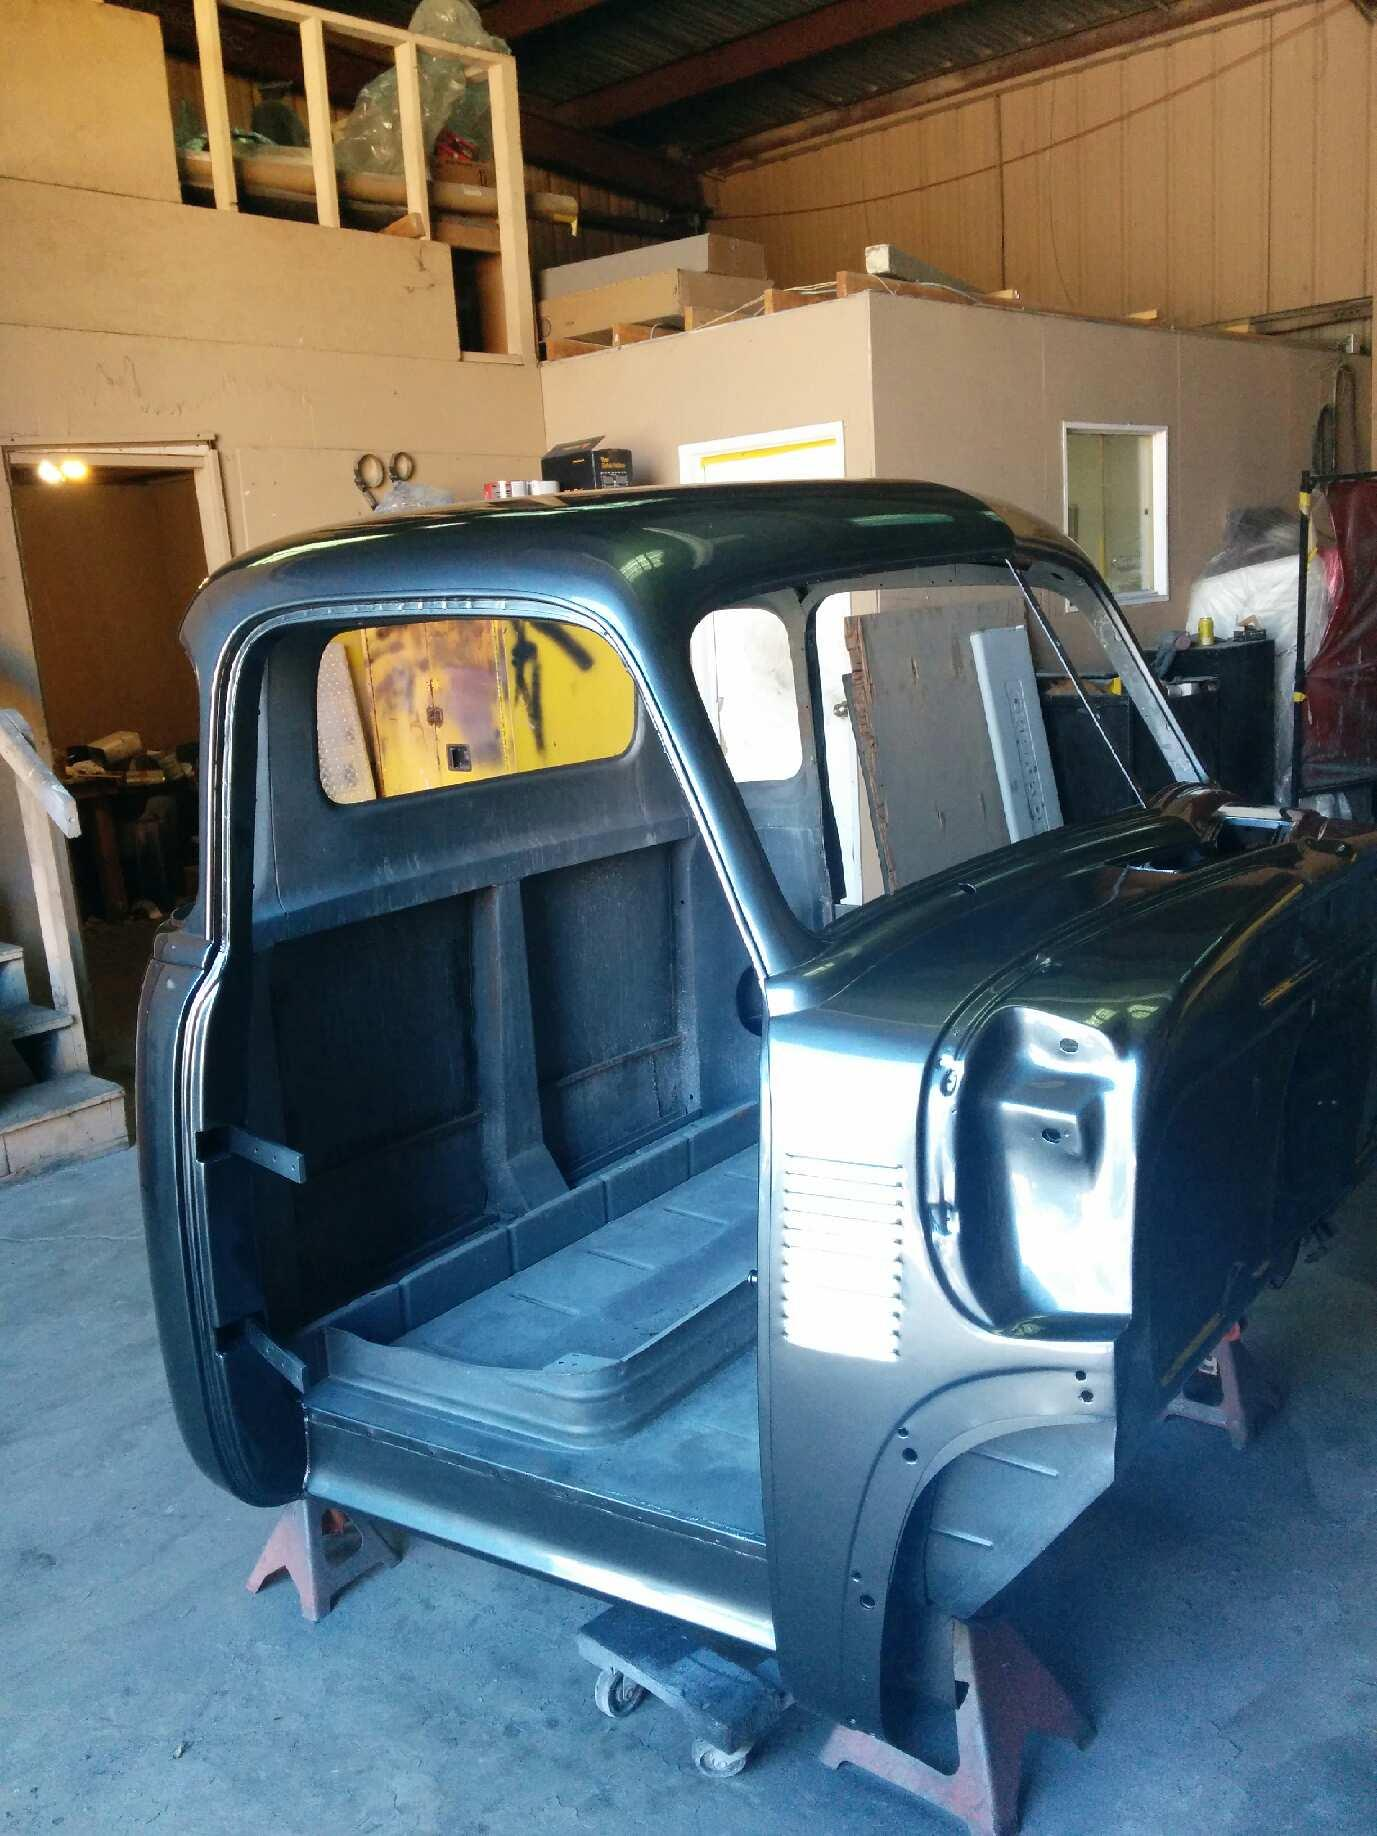 Technical - 1947 chevy truck seat swap options | The H A M B